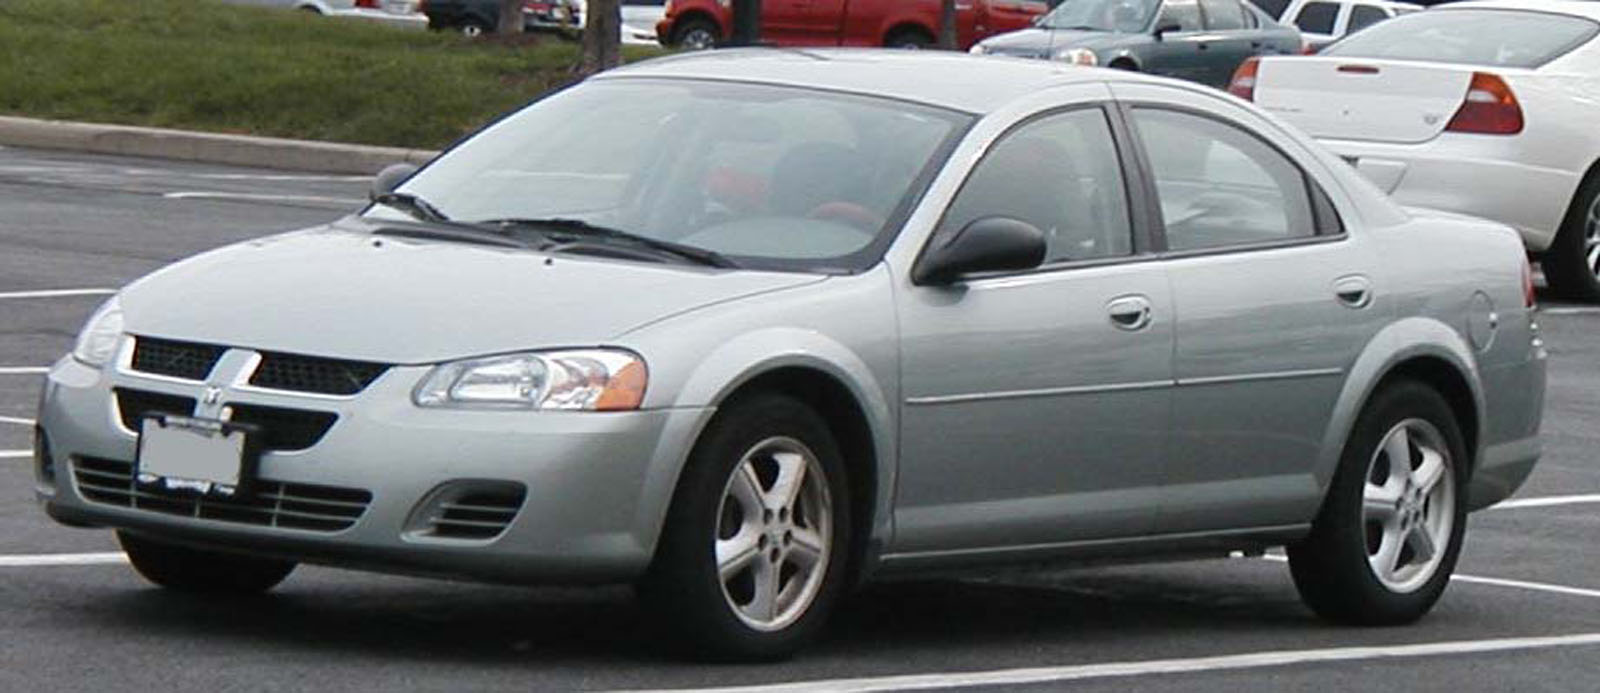 2003 Dodge Stratus For Sale Tallahassee Florida